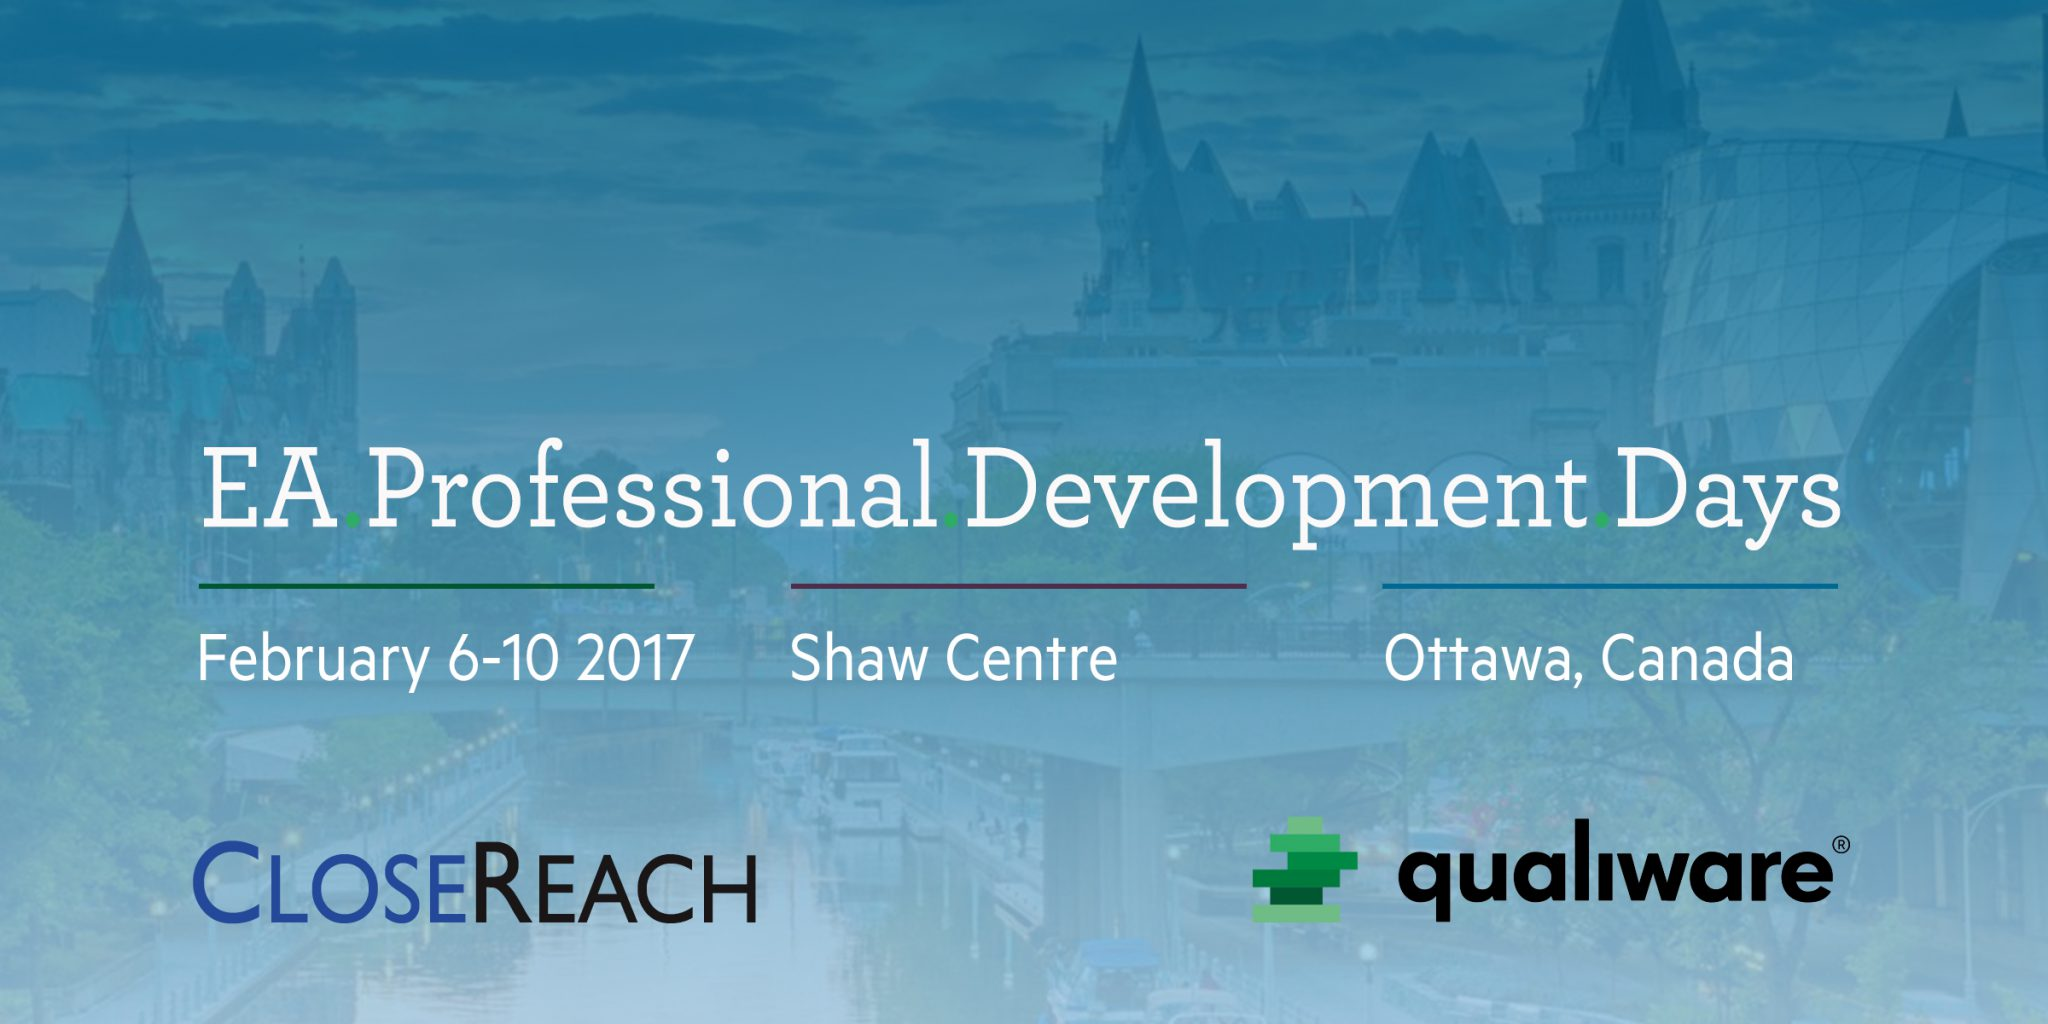 QualiWare + EA Professional Development Days 2017